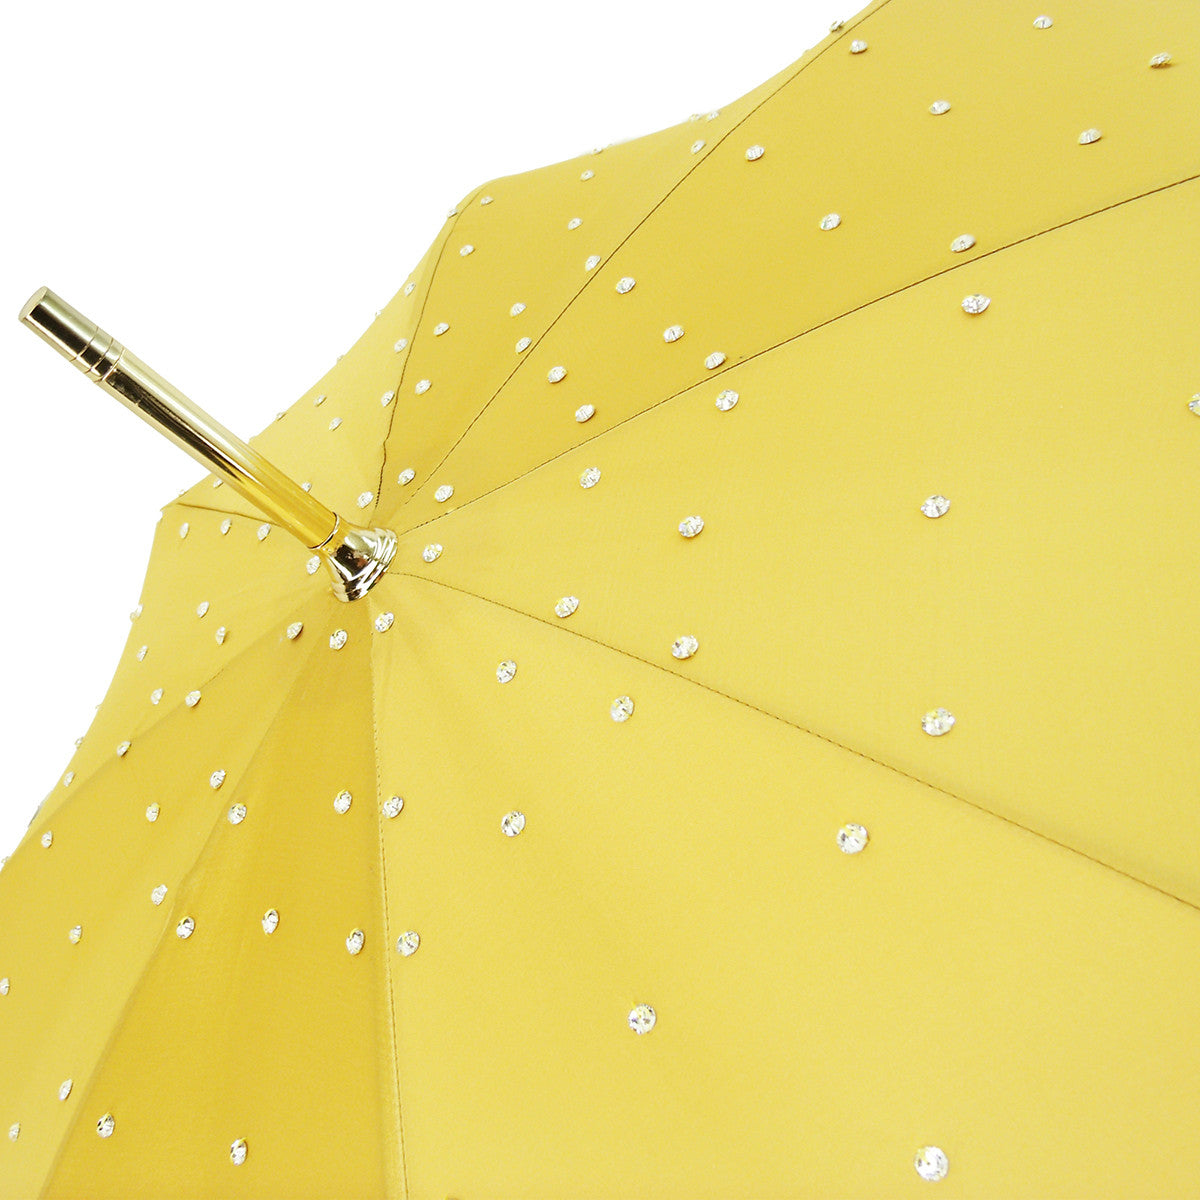 LUXURY DOUBLE CLOTH FASHION CRYSTALS UMBRELLAS